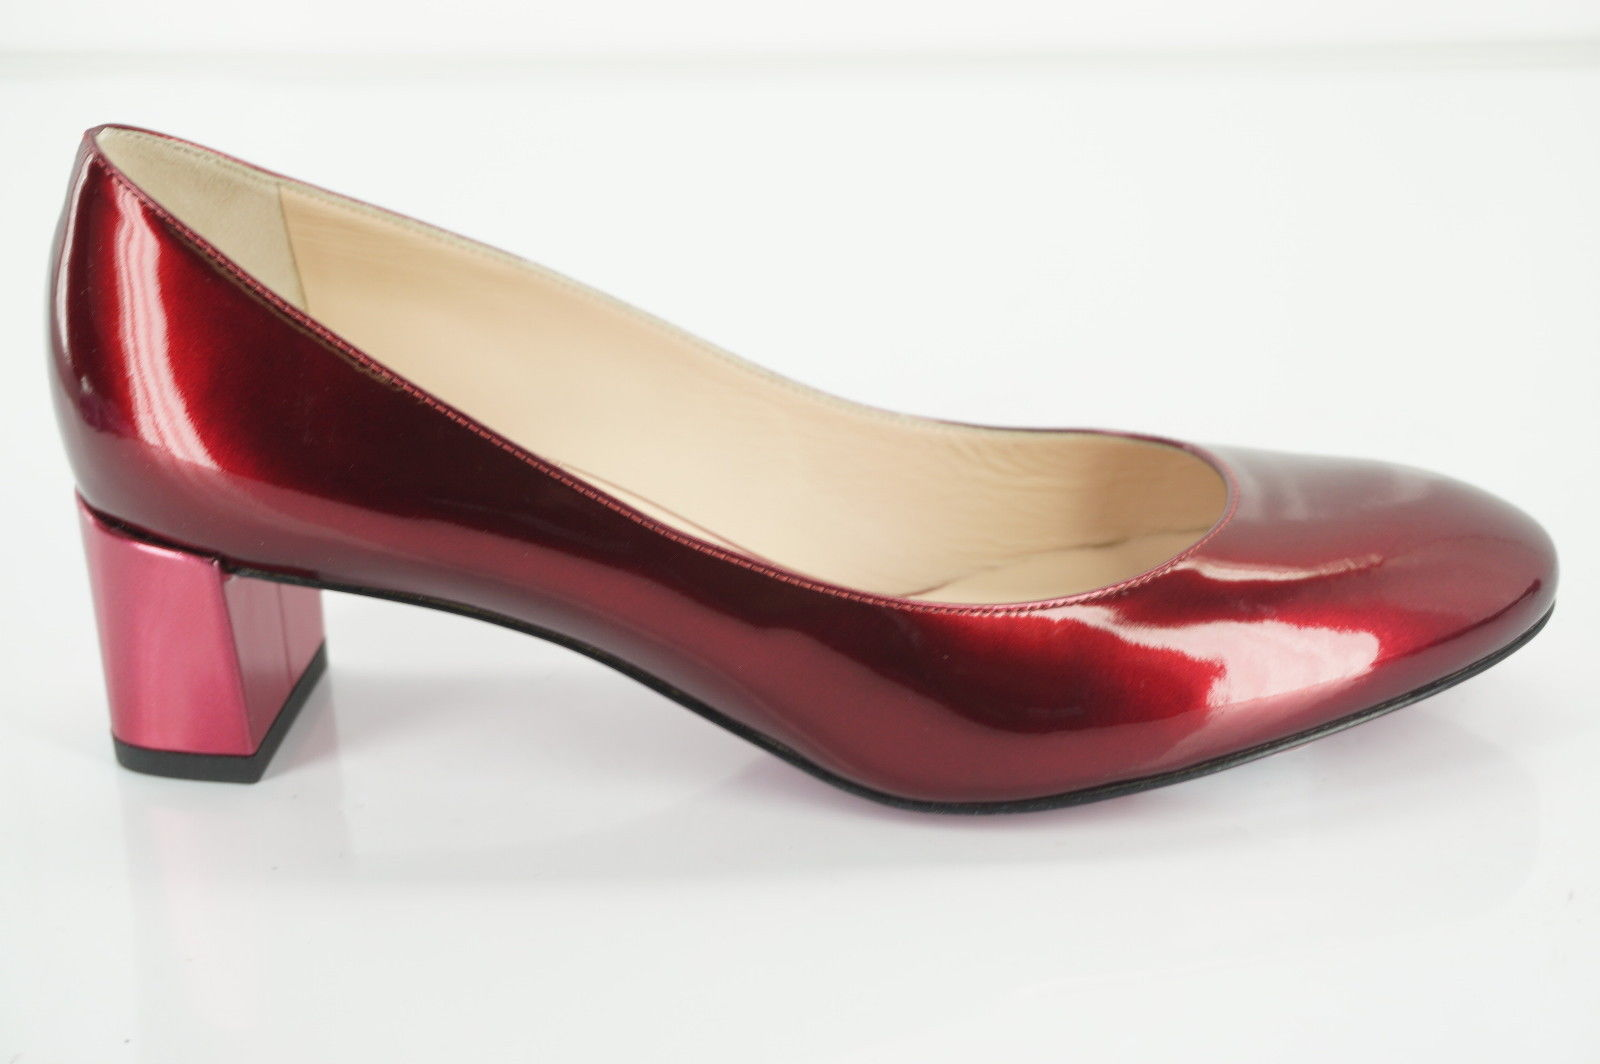 Fendi Womens Eloise Pump Red Patent Size 36.5